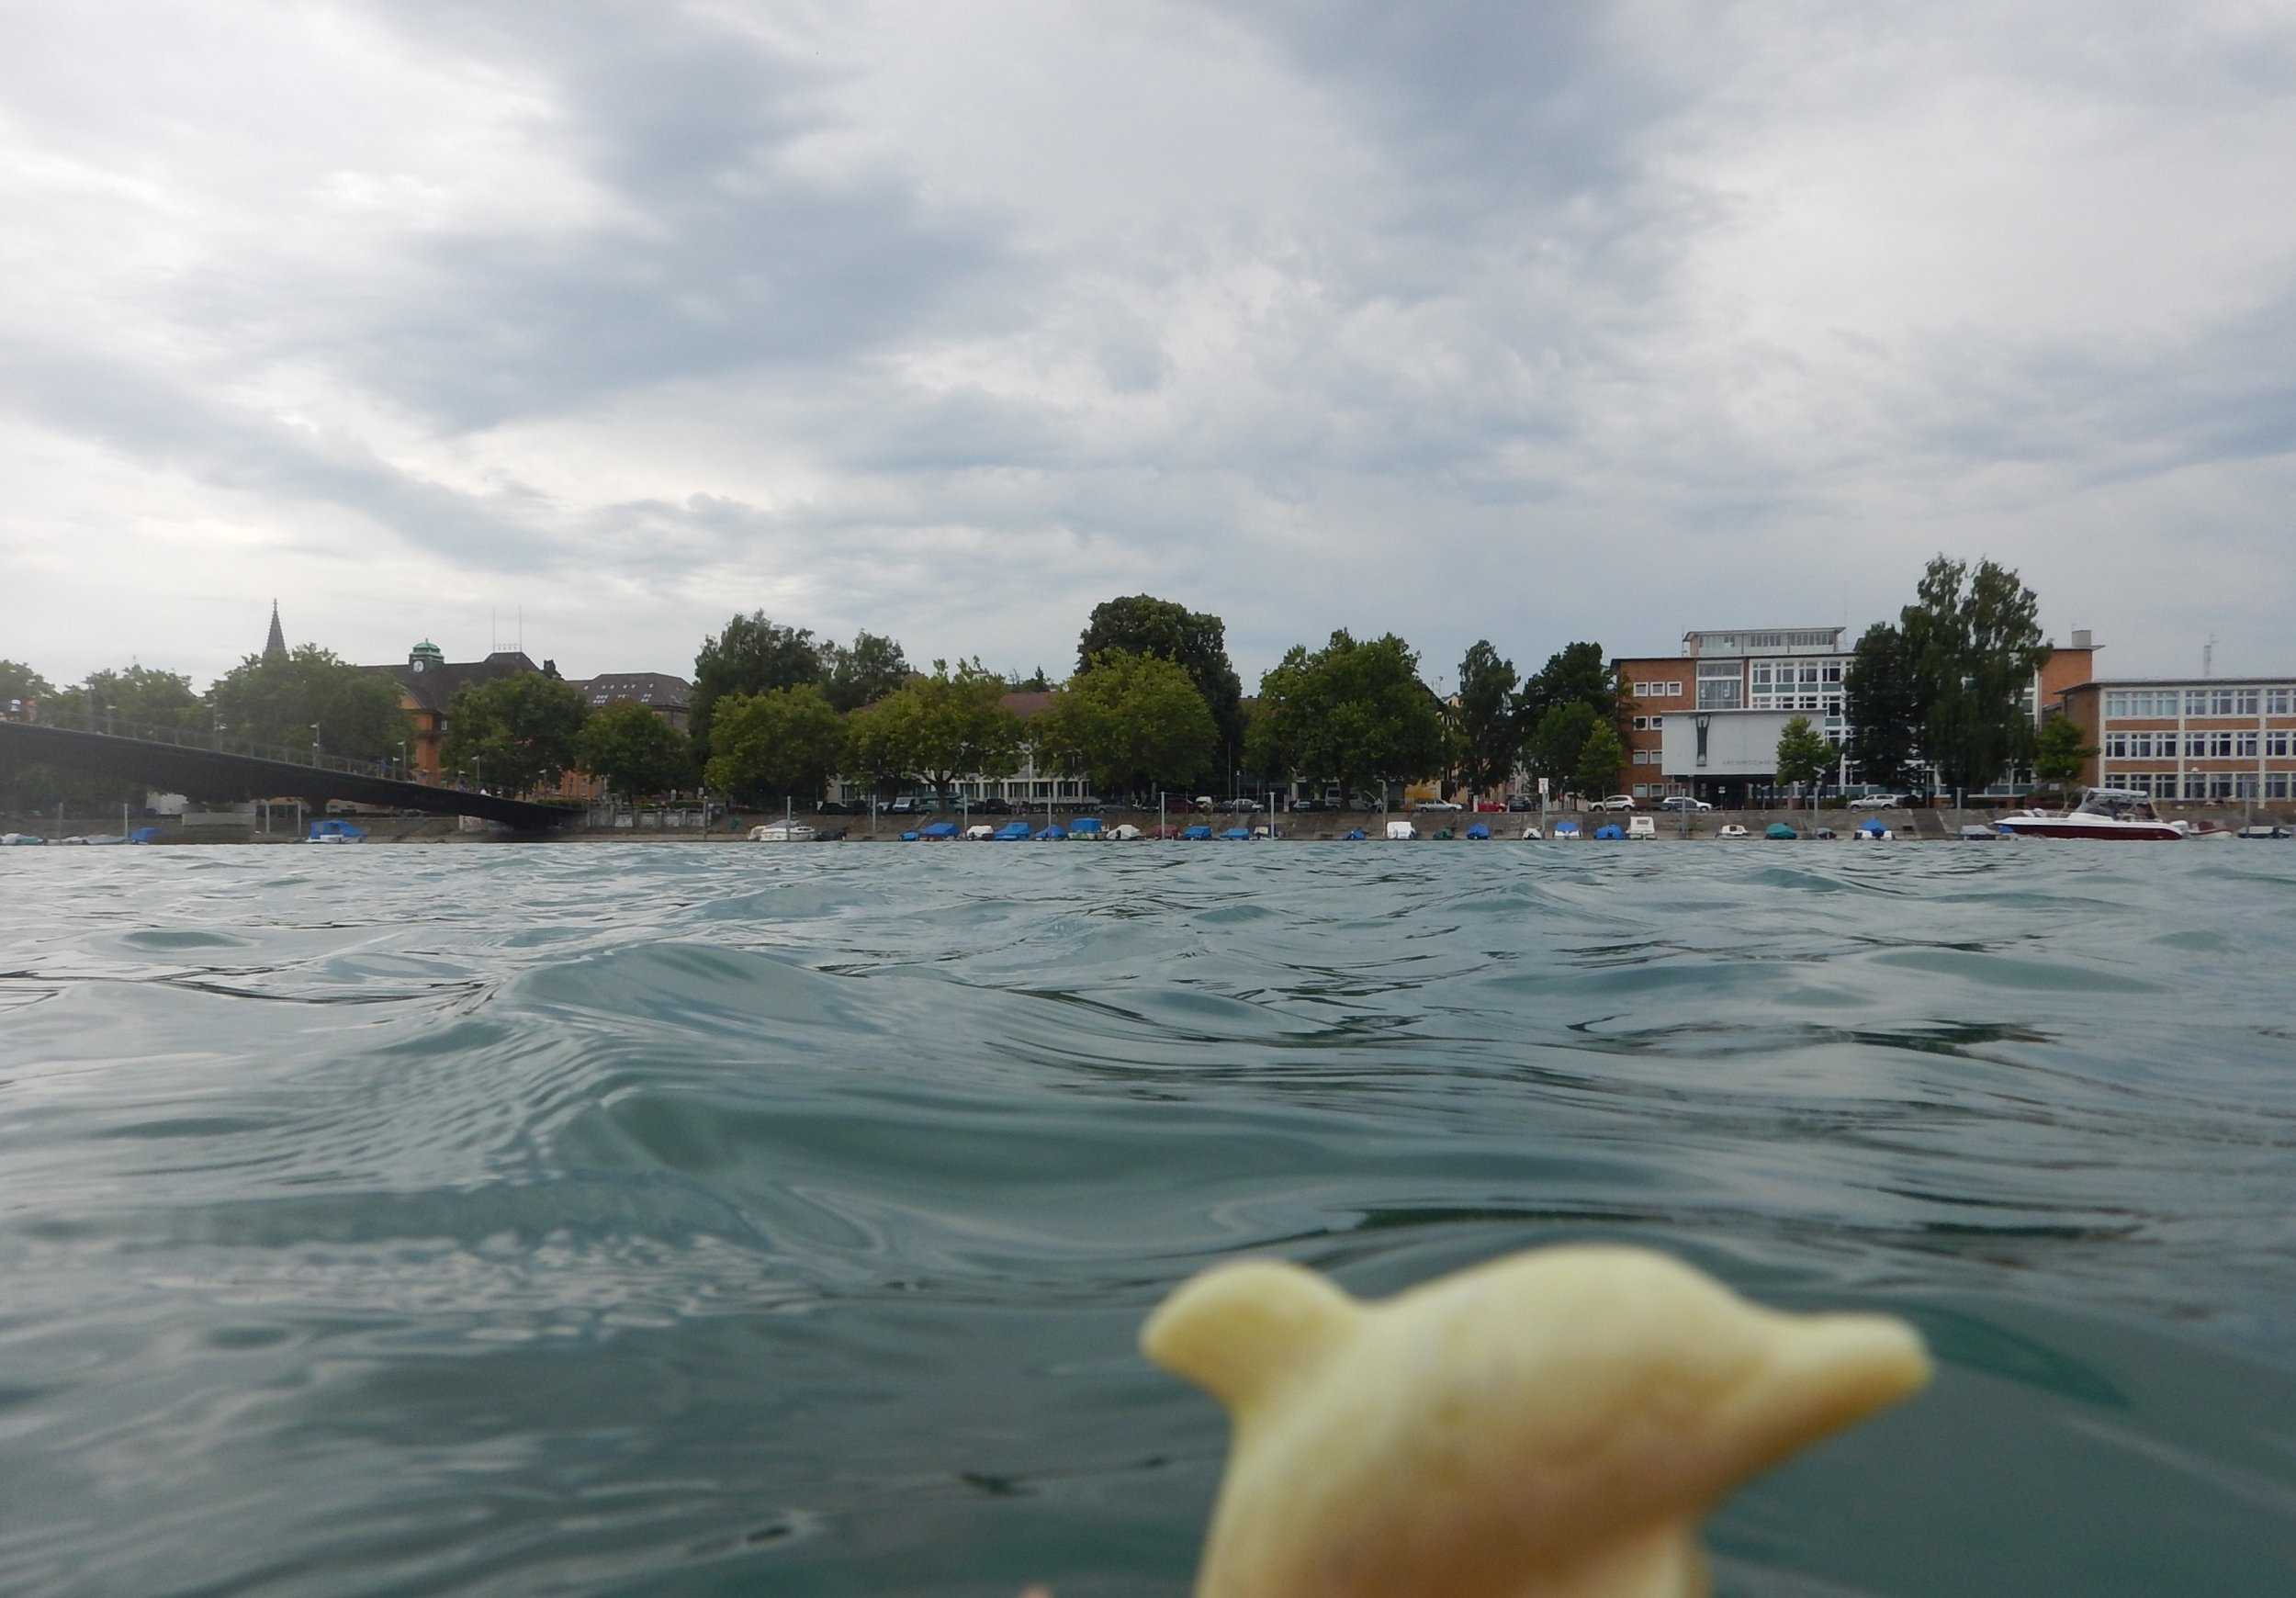 Swimming with dolphins in the Rhine River, Germany